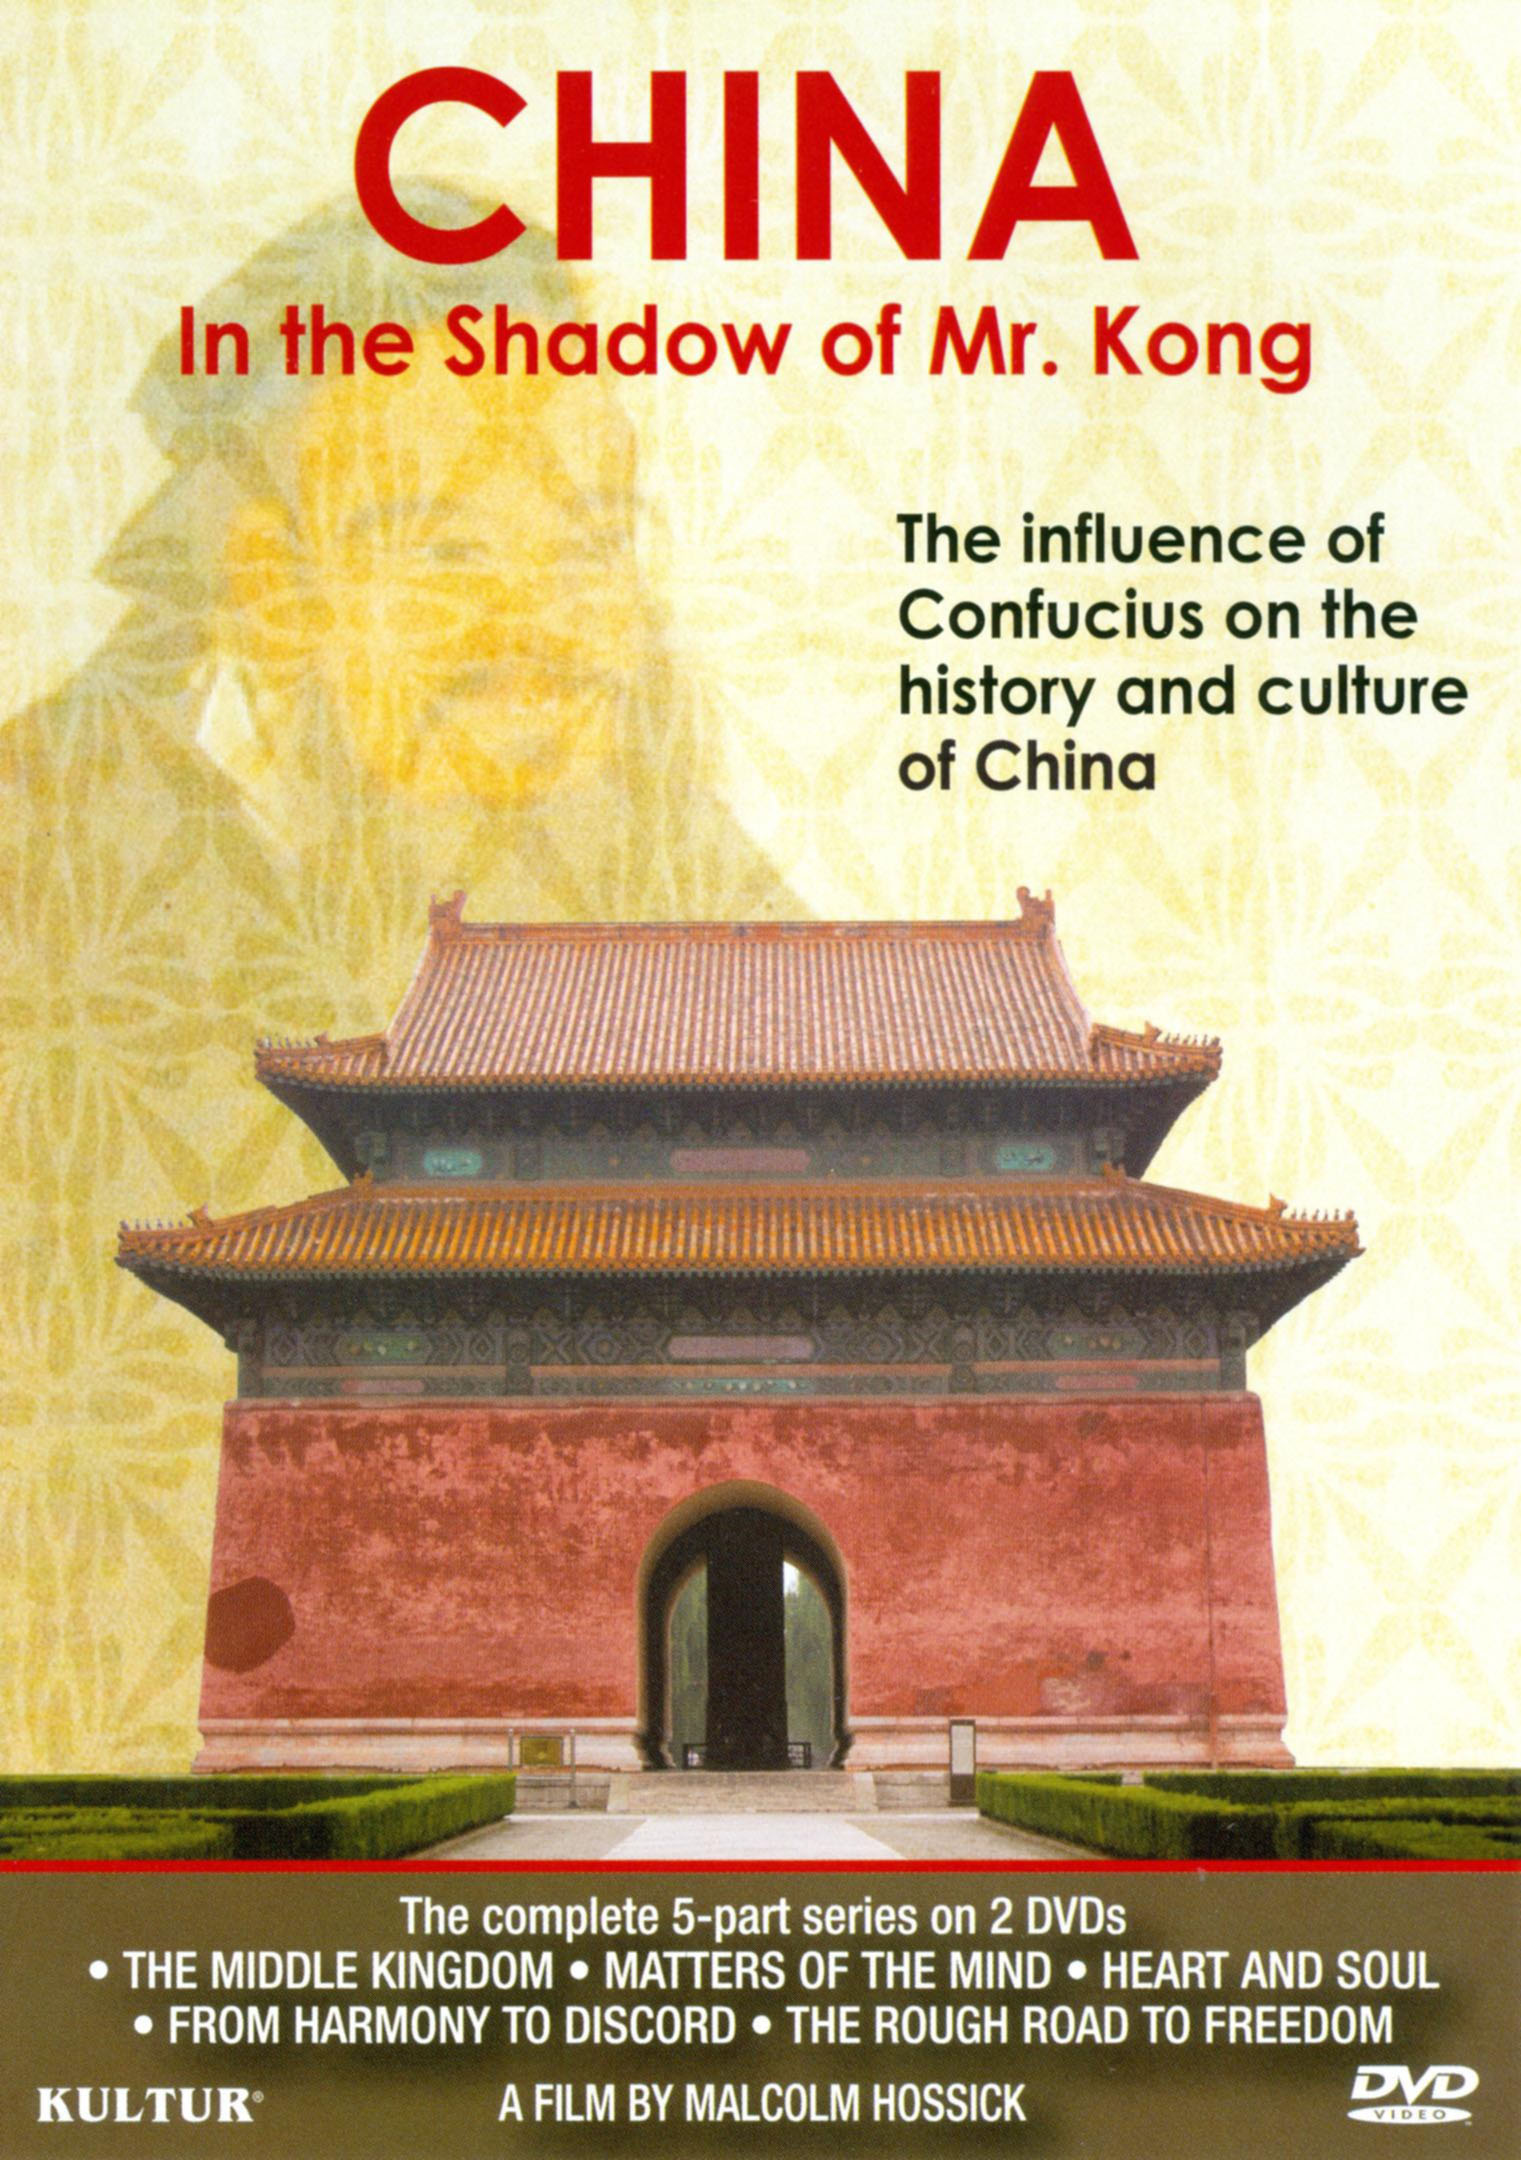 China: In the Shadow of Mr. Kong